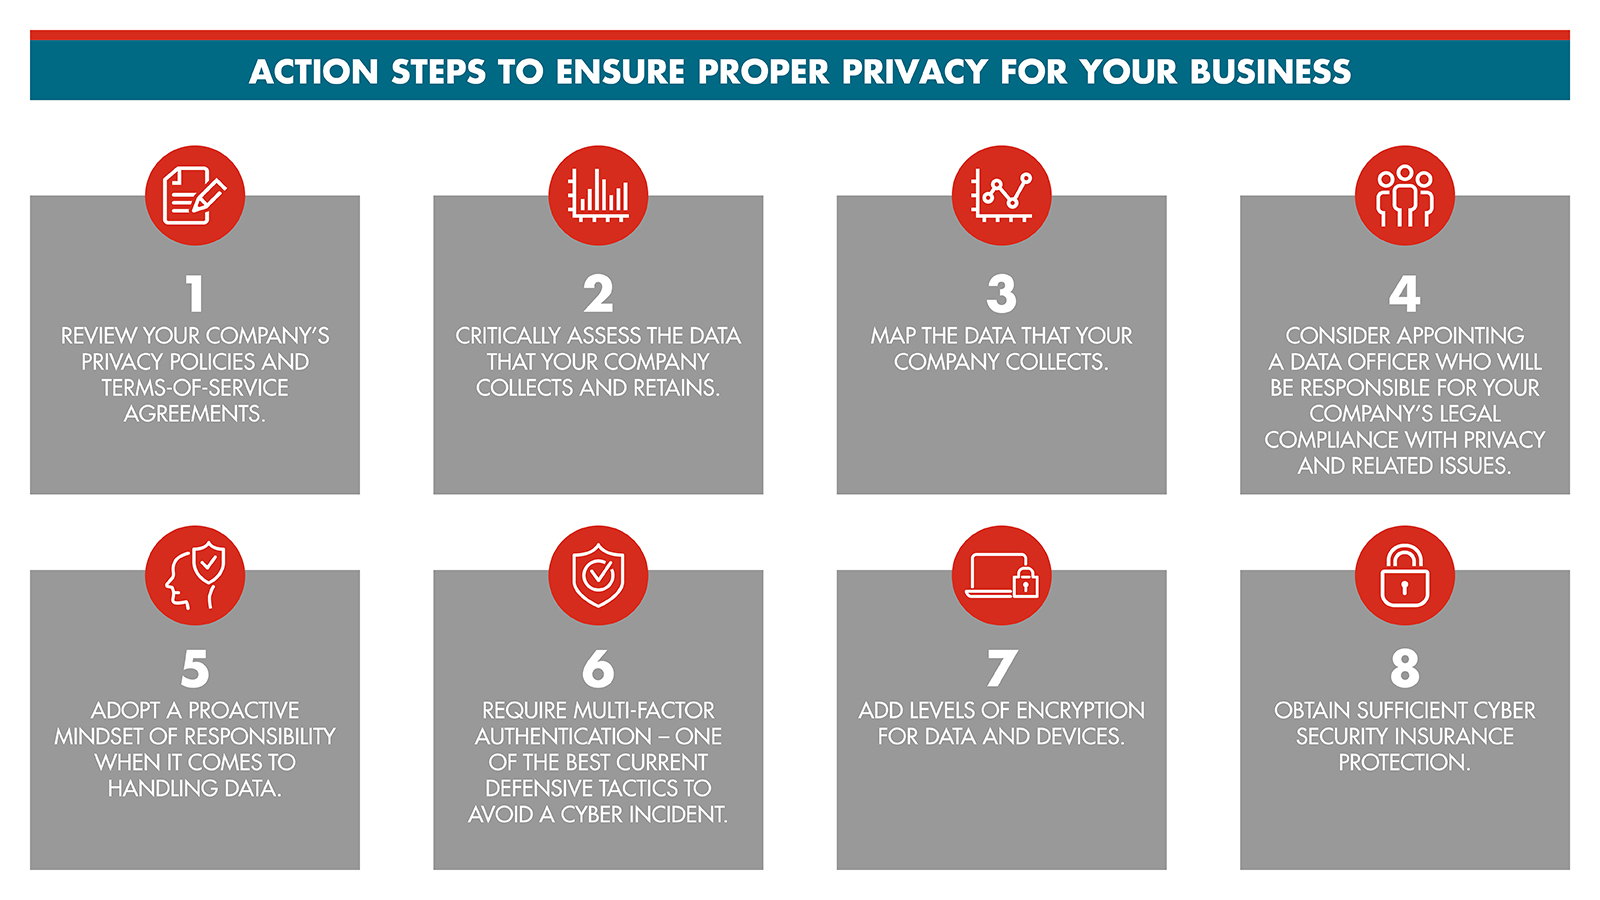 Infographic: Action Steps to Ensure Proper Privacy for Your Business